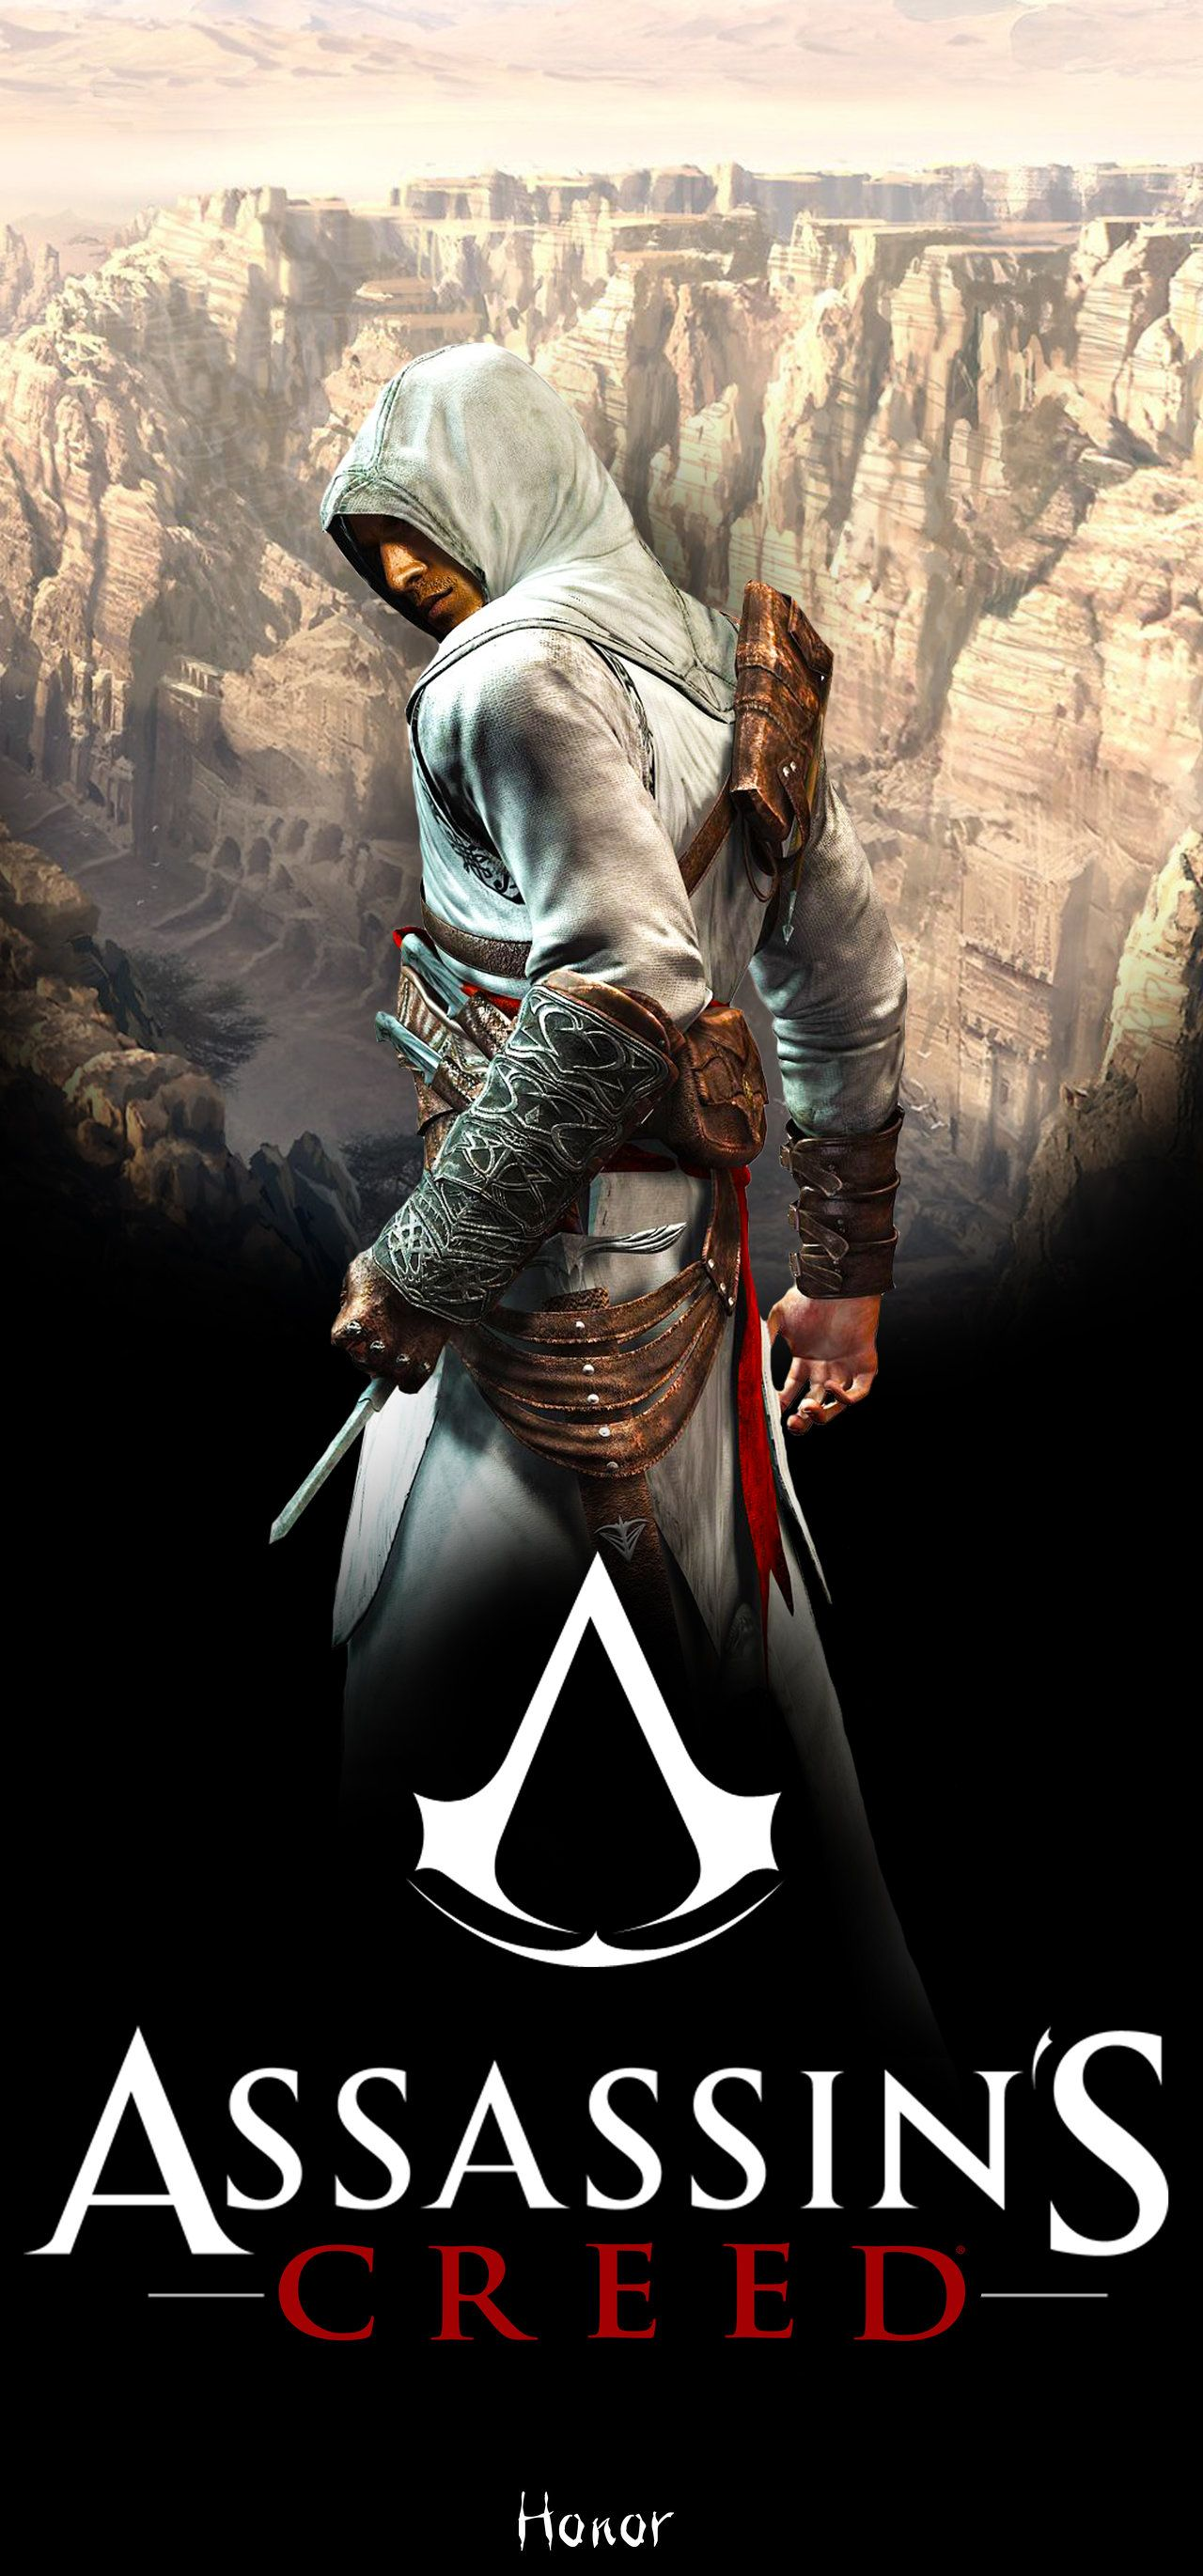 Assassin S Creed Poster Large Altair By Ven93 On Deviantart Assassins Creed Artwork Assassin S Creed Wallpaper Assassins Creed Unity Arno